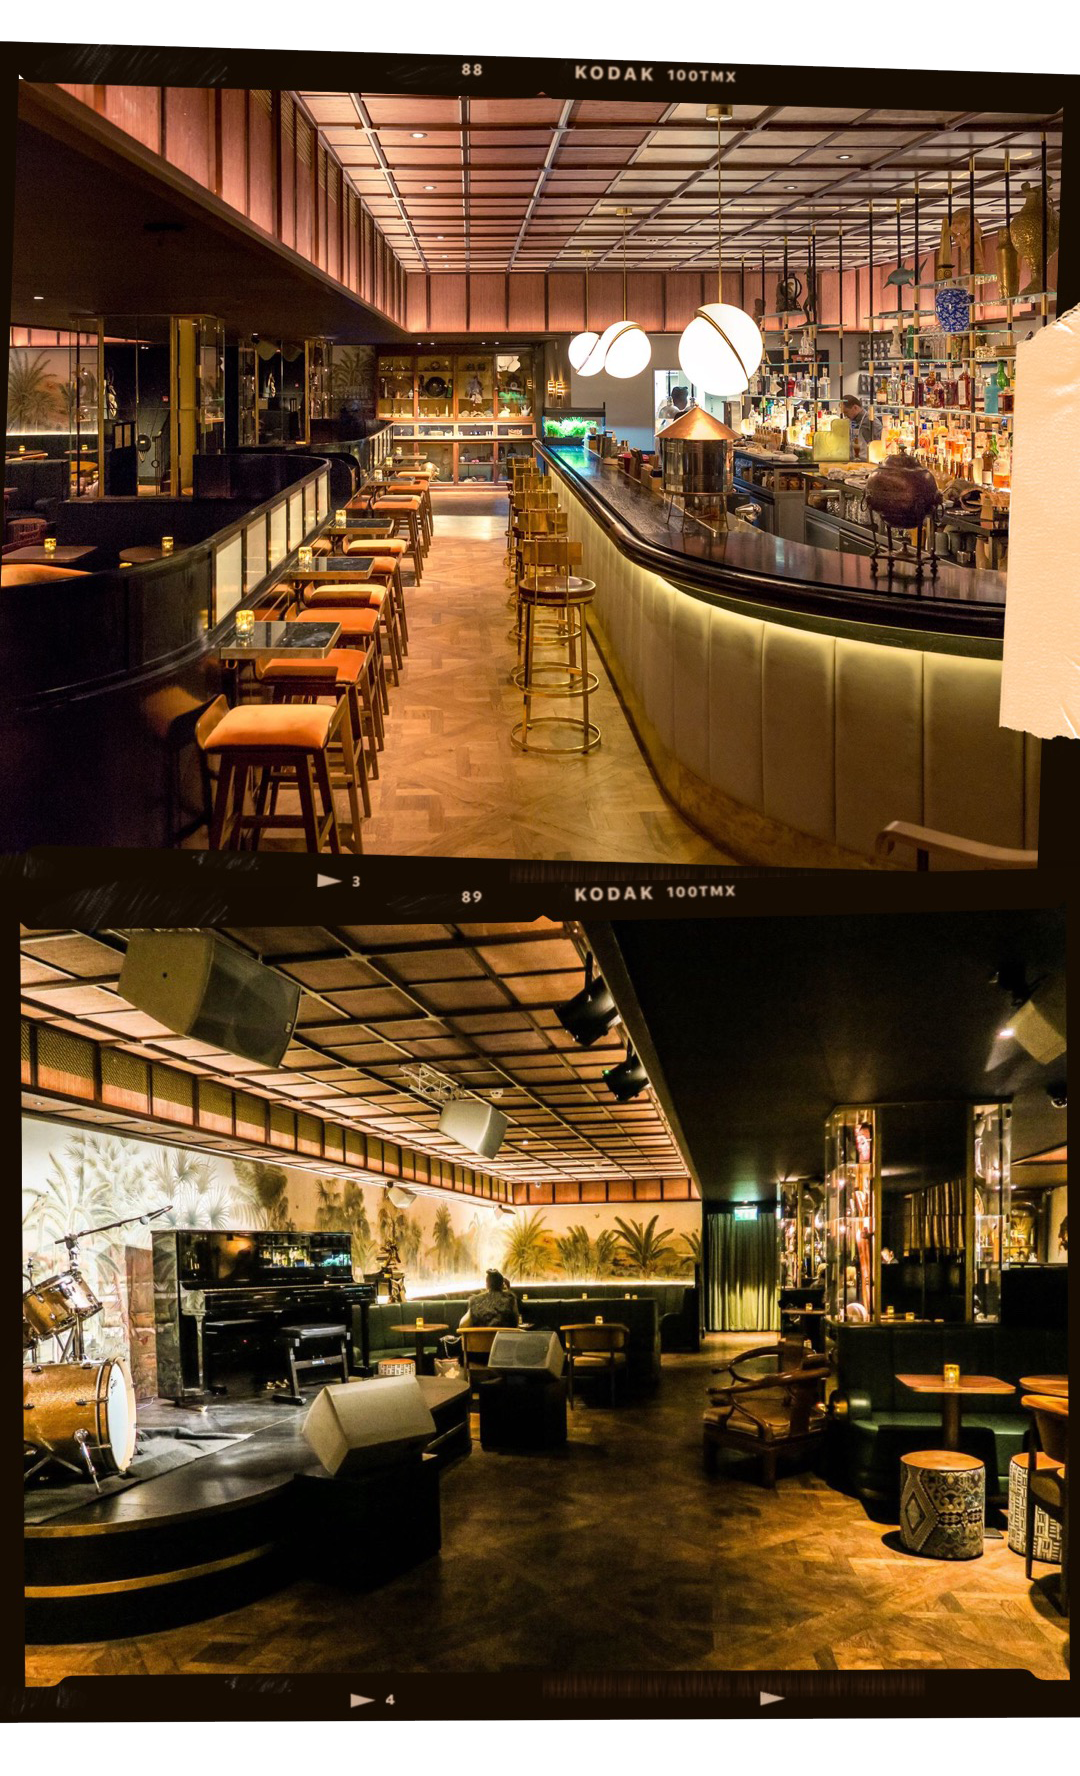 ORIOLE - A slightly fancier option for a night out, the Oriole Bar serves you all that fancy vintage night out vibe. Oriole is known for the live music in style of the New Orleans Jazz or the 50's Rhythm and Blues. Be sure to dress nicely and make a reservation beforehand.Location:East Poultry Avenue, Smithfield Markets, EC1A 9LH